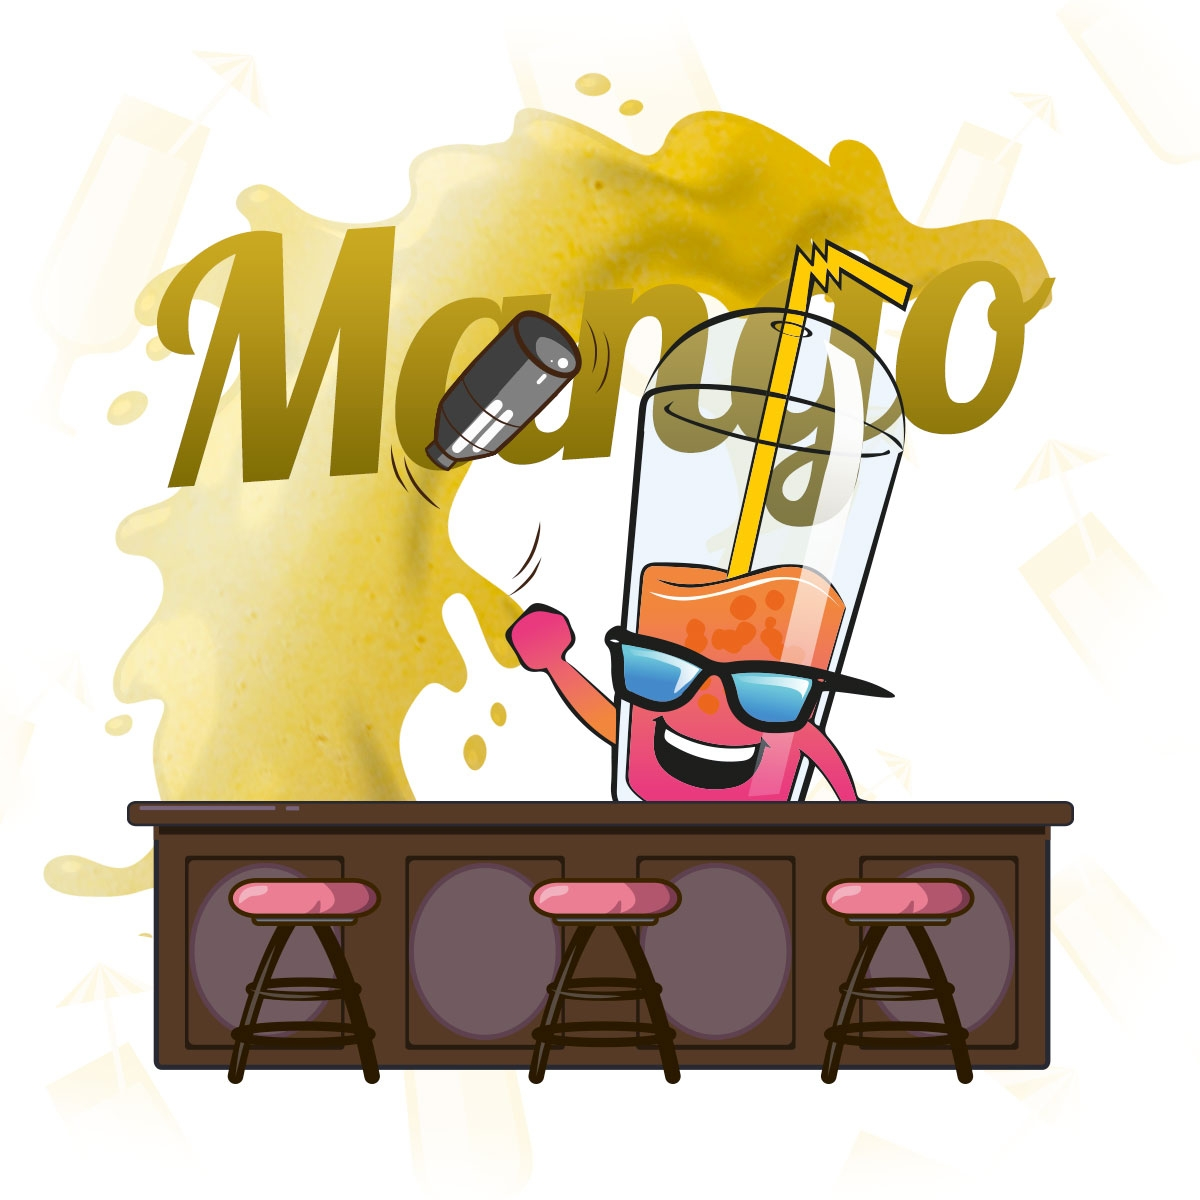 Mango Chango / Mango Magic